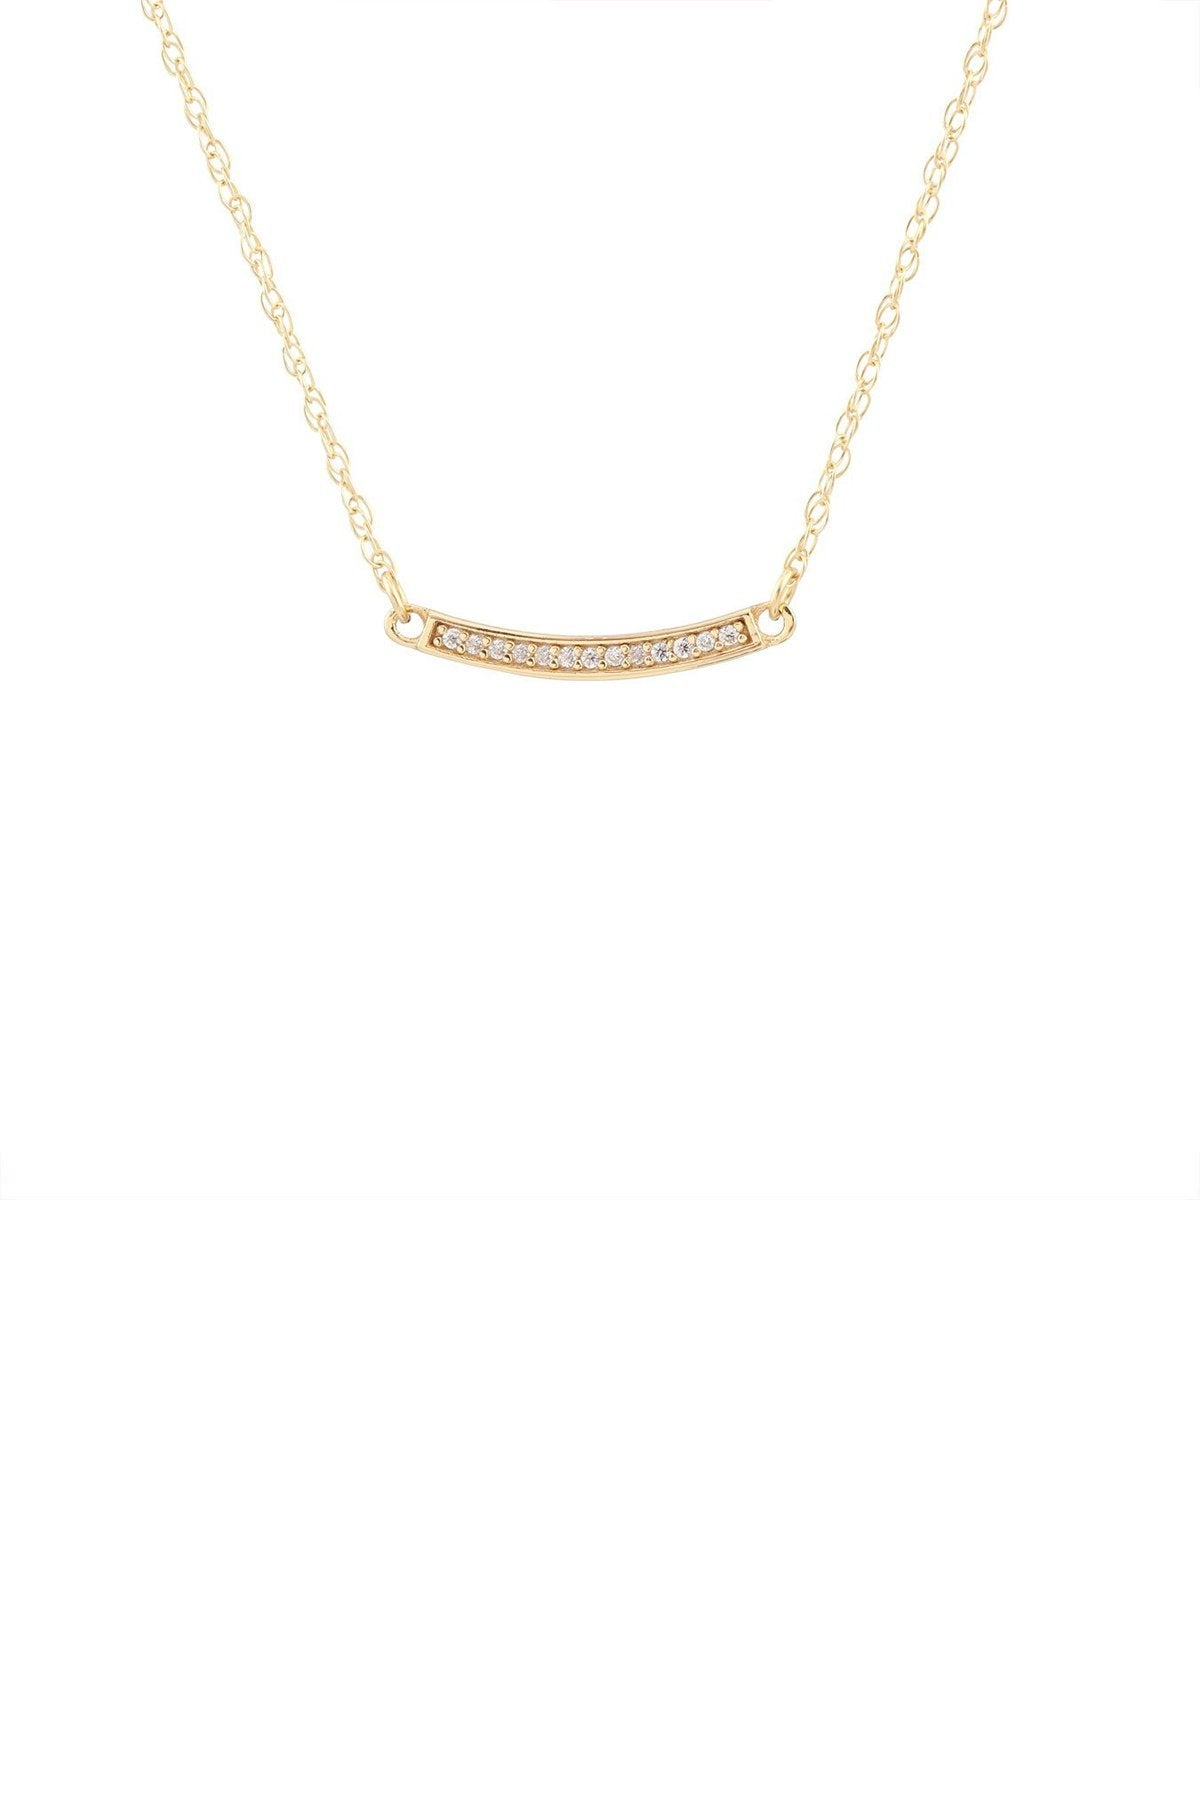 Kris Nations Bar Pave Charm Necklace in 18K Gold Vermeil